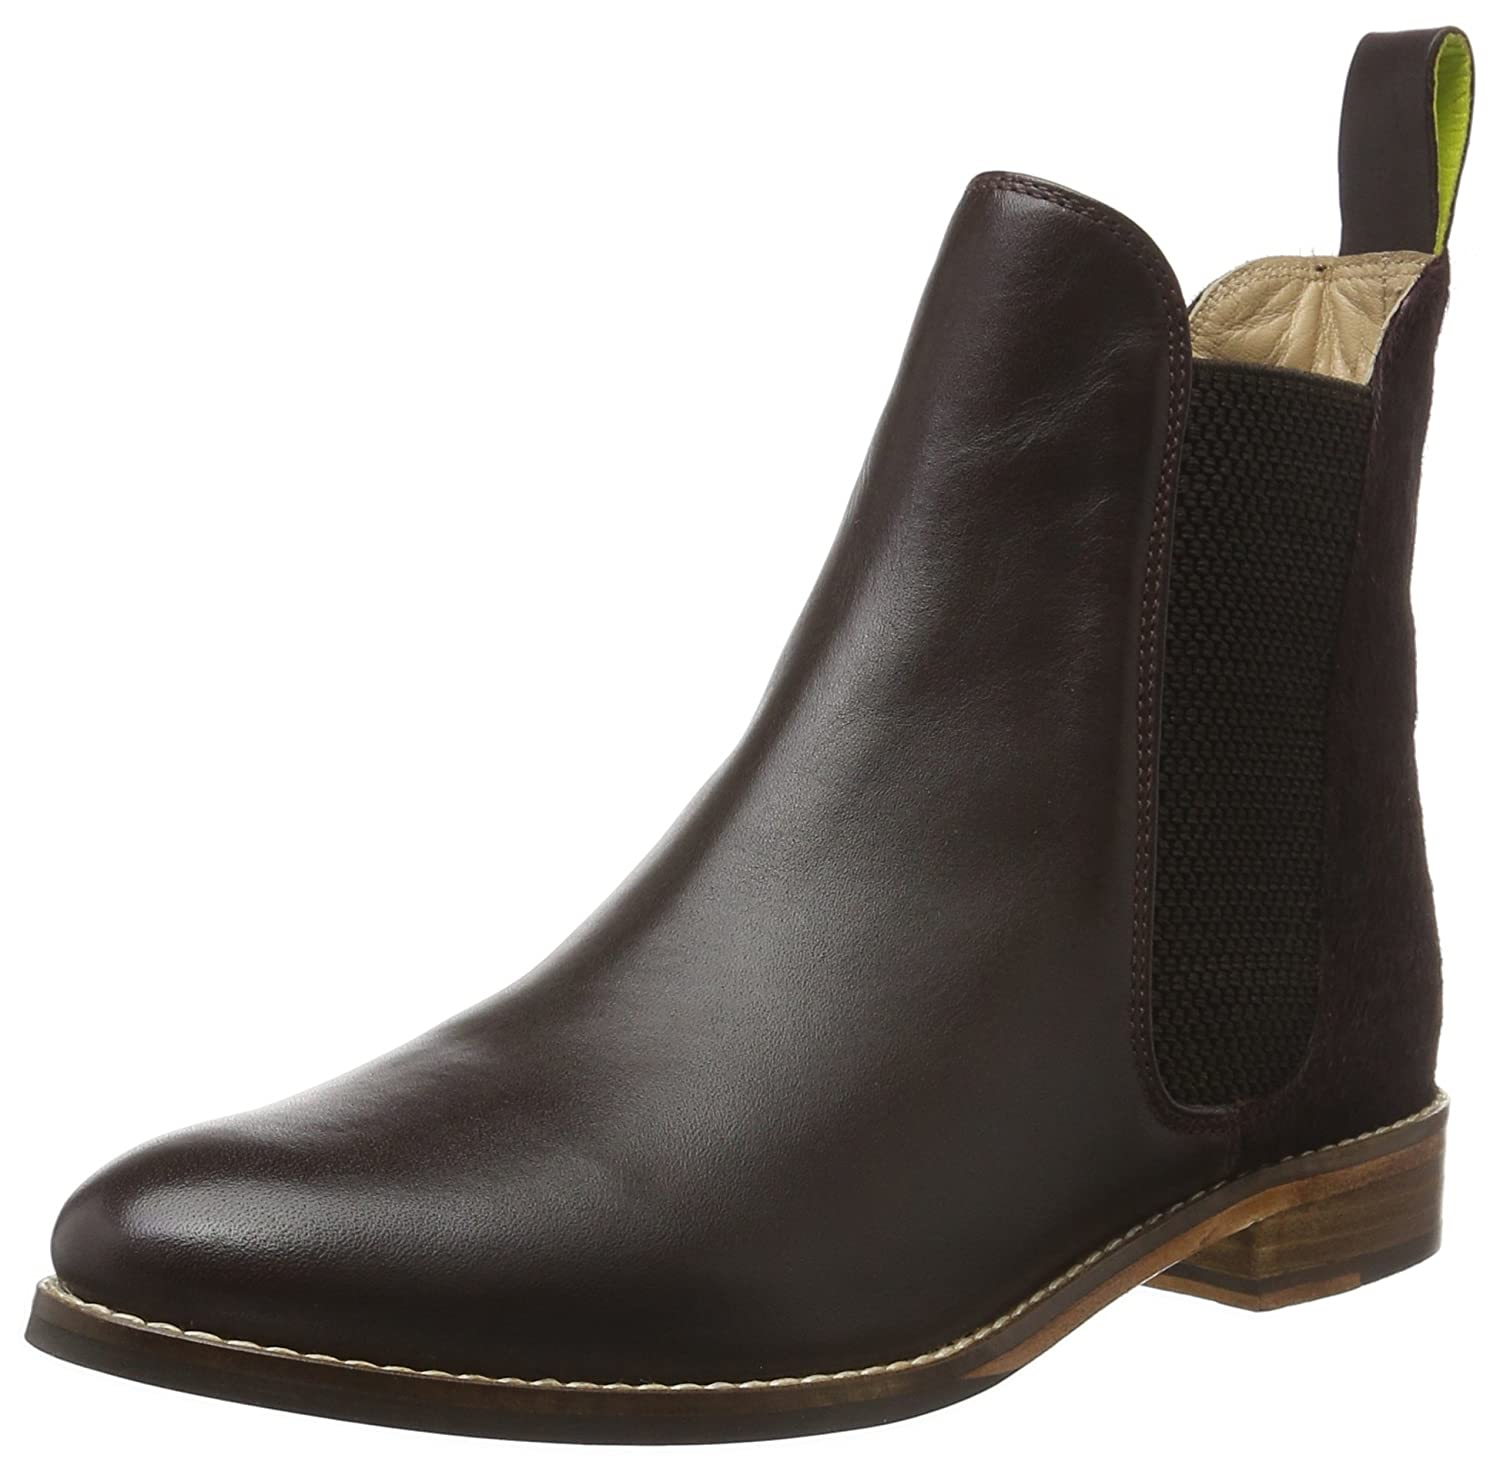 Joules Women's Westbourne Leather Chelsea Boots B01EZ5M6TI 7 B(M) US|Oxblood